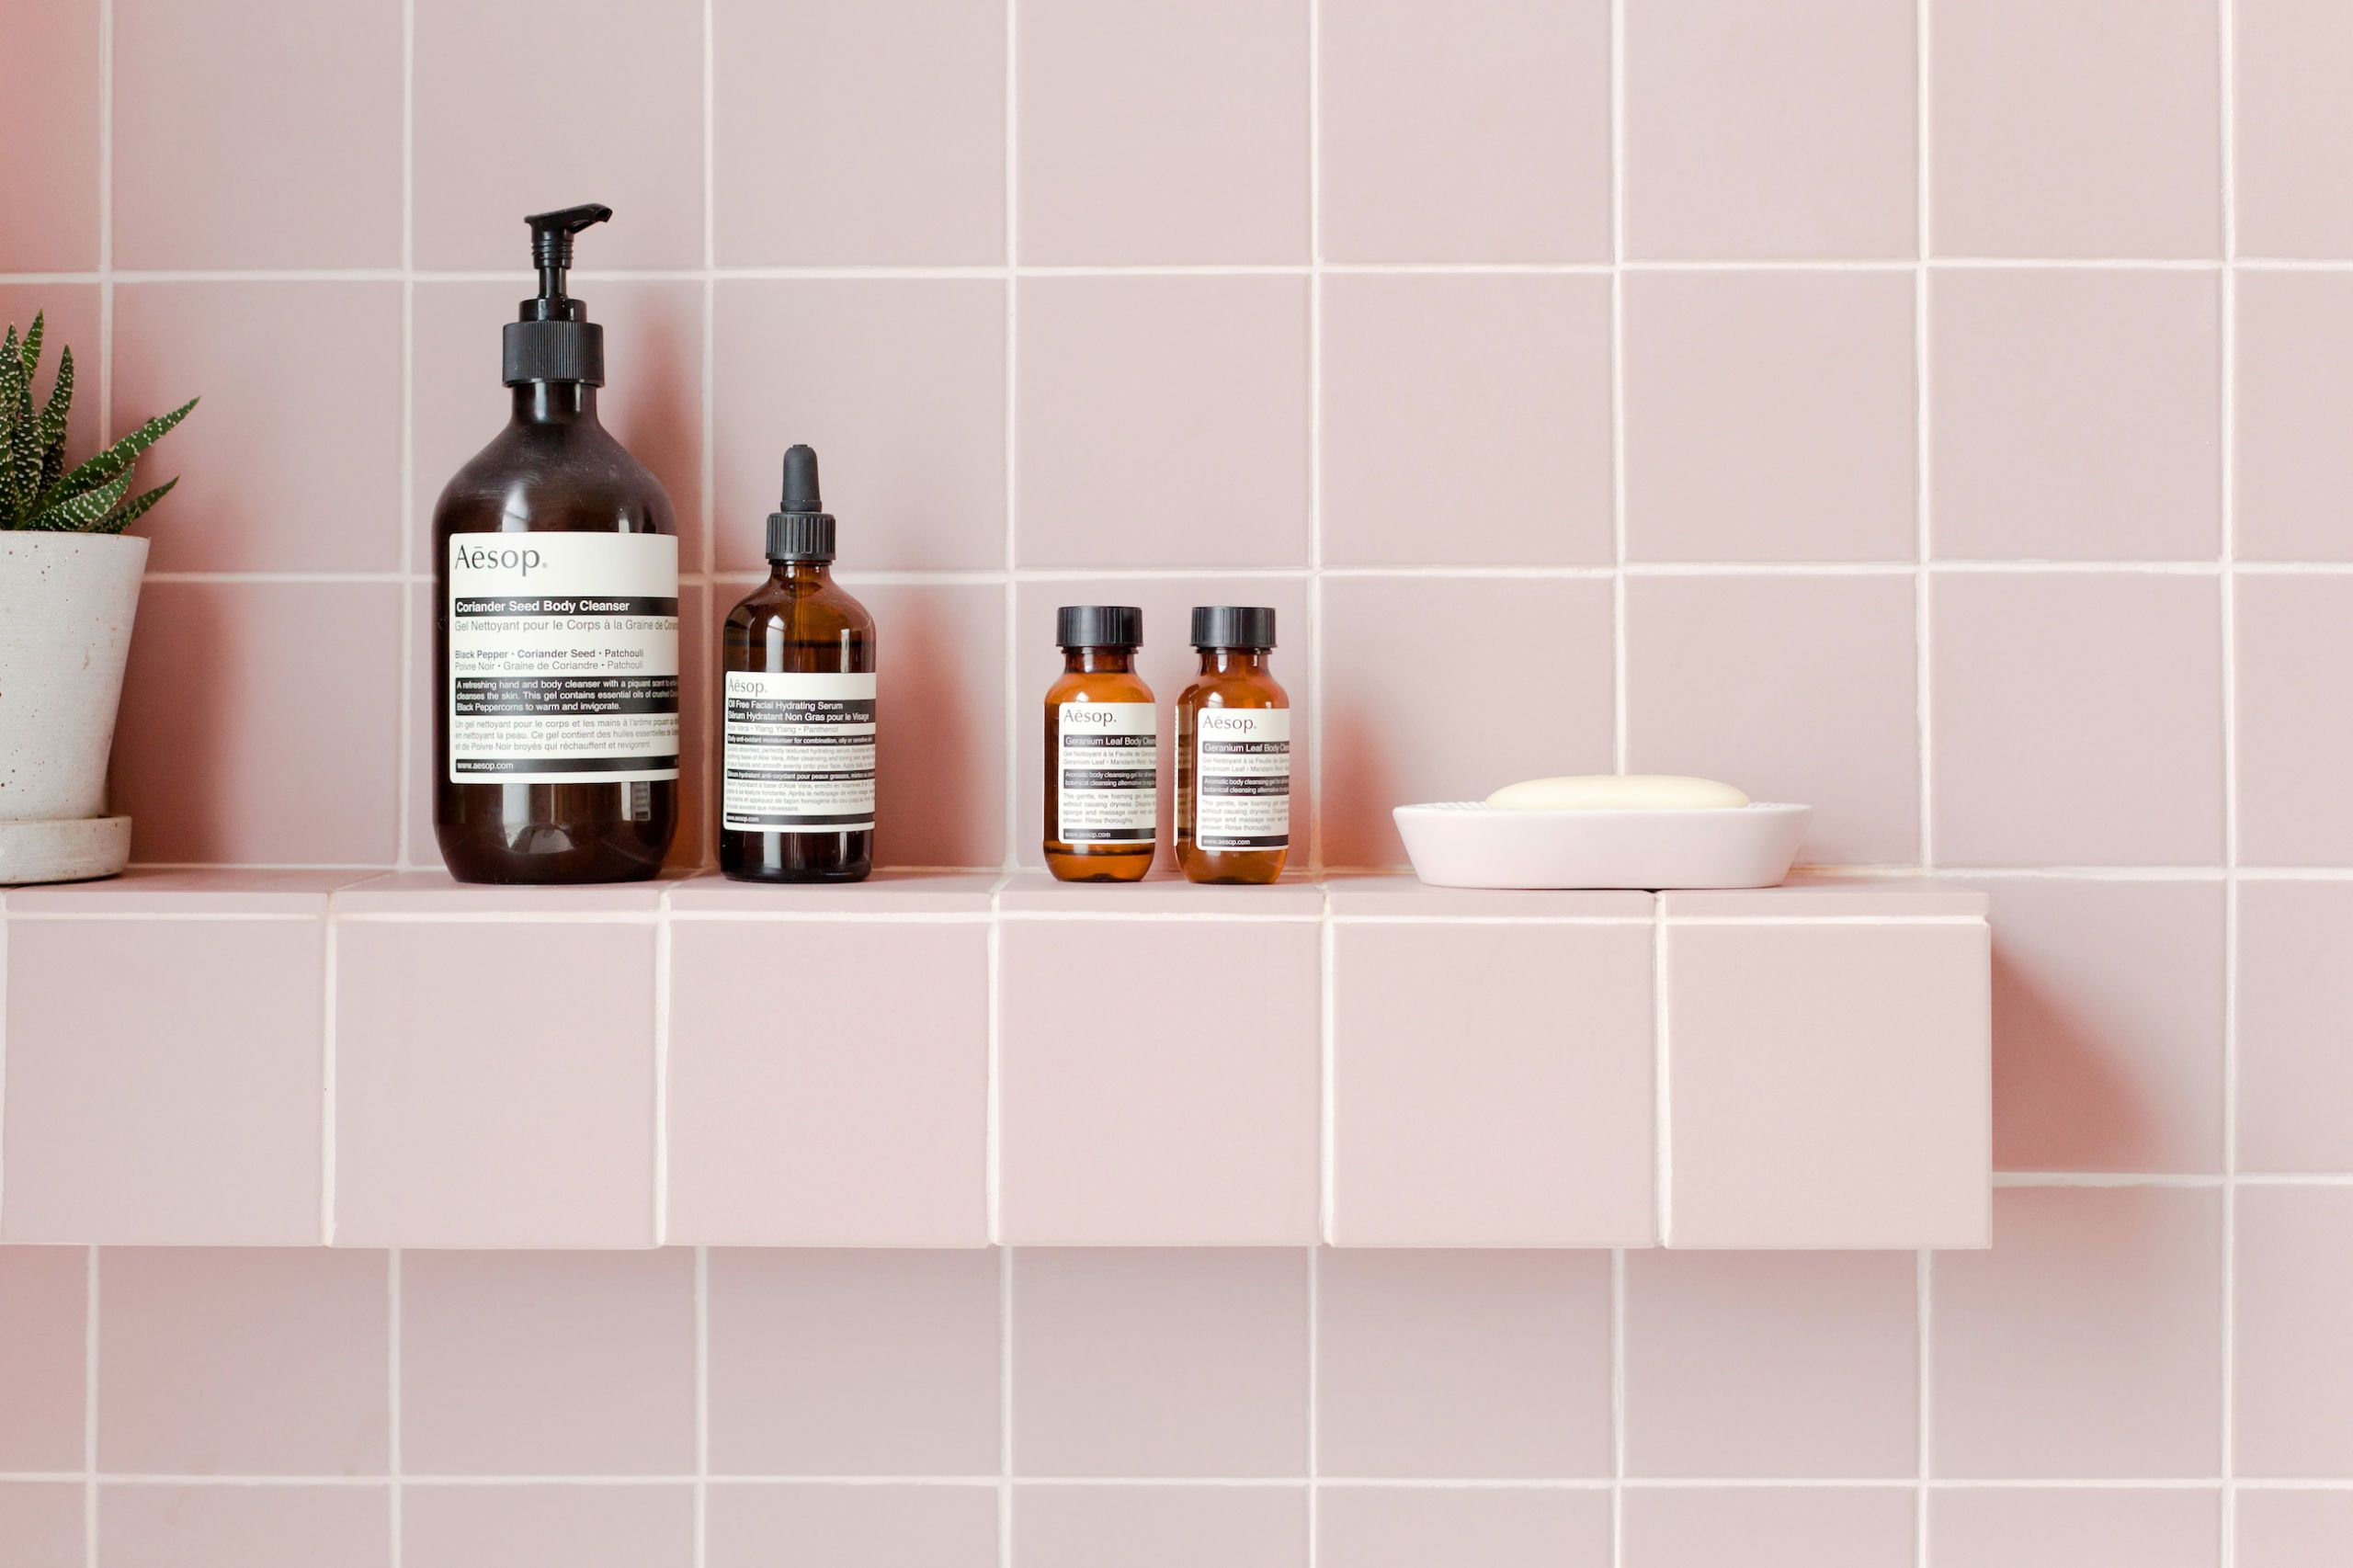 Merveilleux 2LG Studio   Pink Bathroom Look: Tile Giant Victorian Pink Tiles And  Products From Victoria